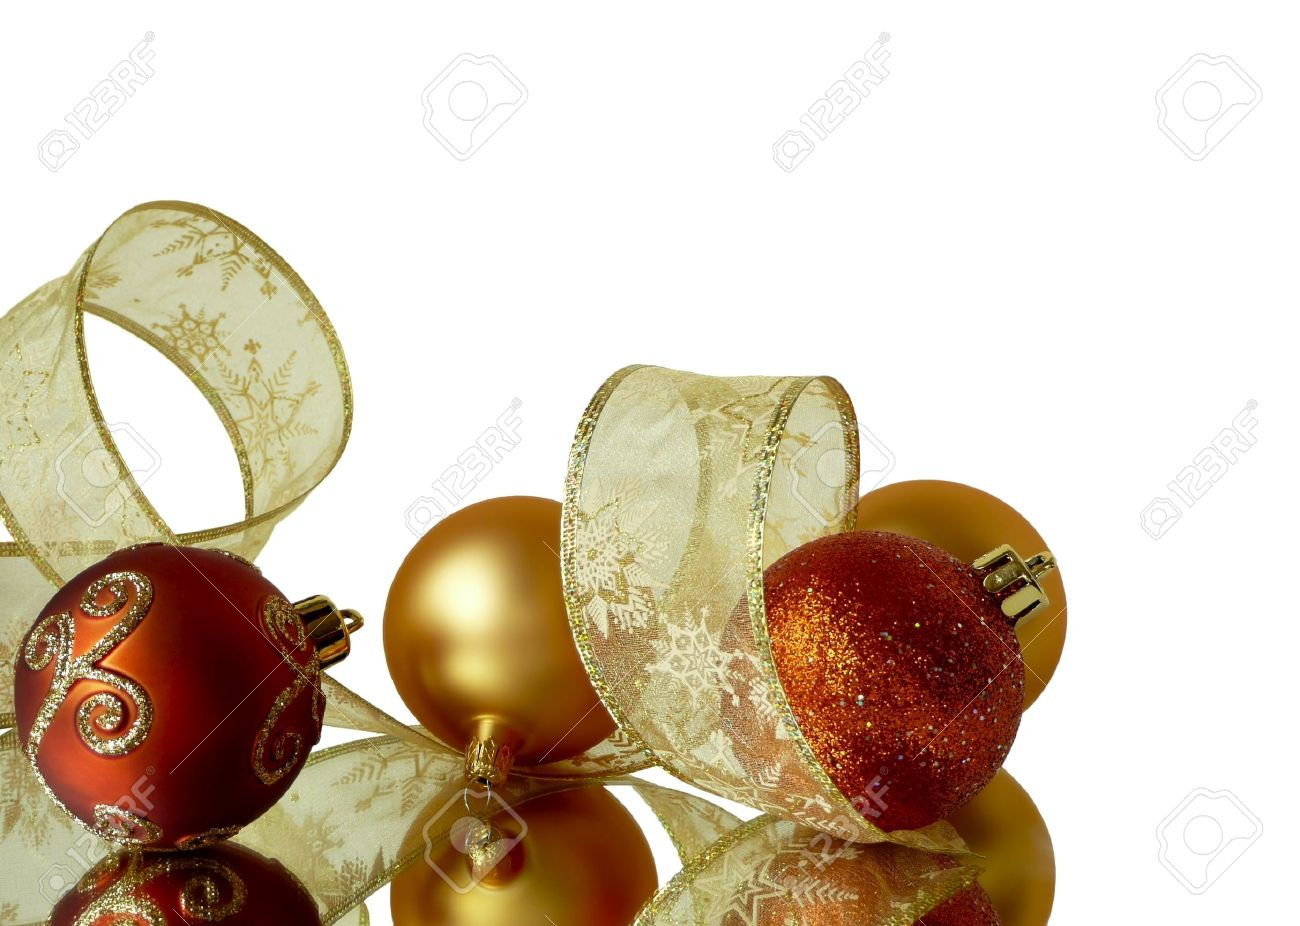 White christmas tree with red and gold decorations - Corner Background Decorations Of Red And Gold Christmas Tree Balls And Ribbons Isolated On White Stock